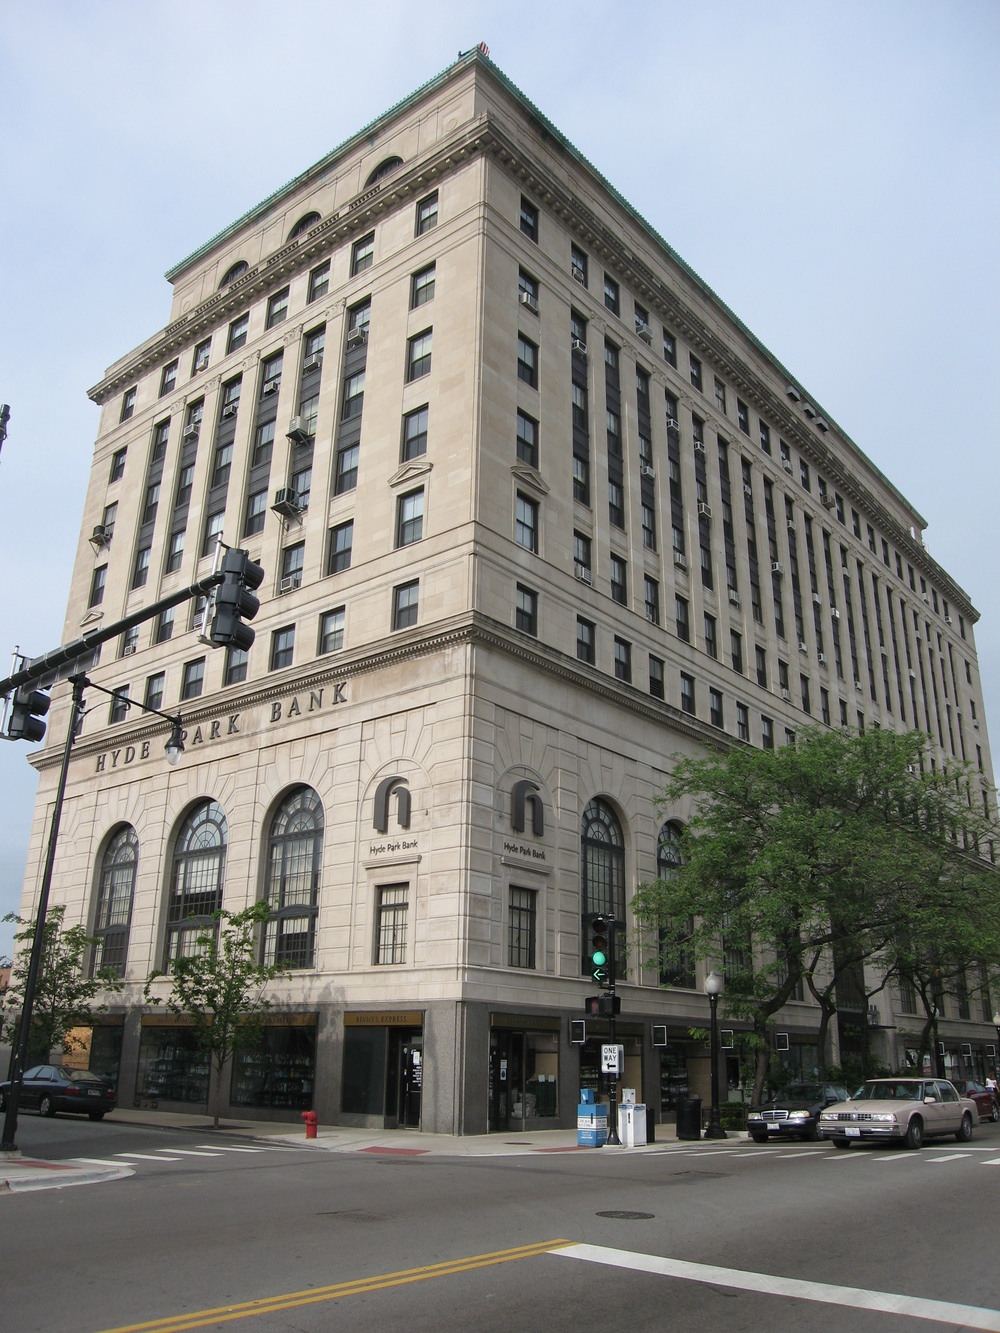 Hyde Park Bank Building - 1525 E. 53rd